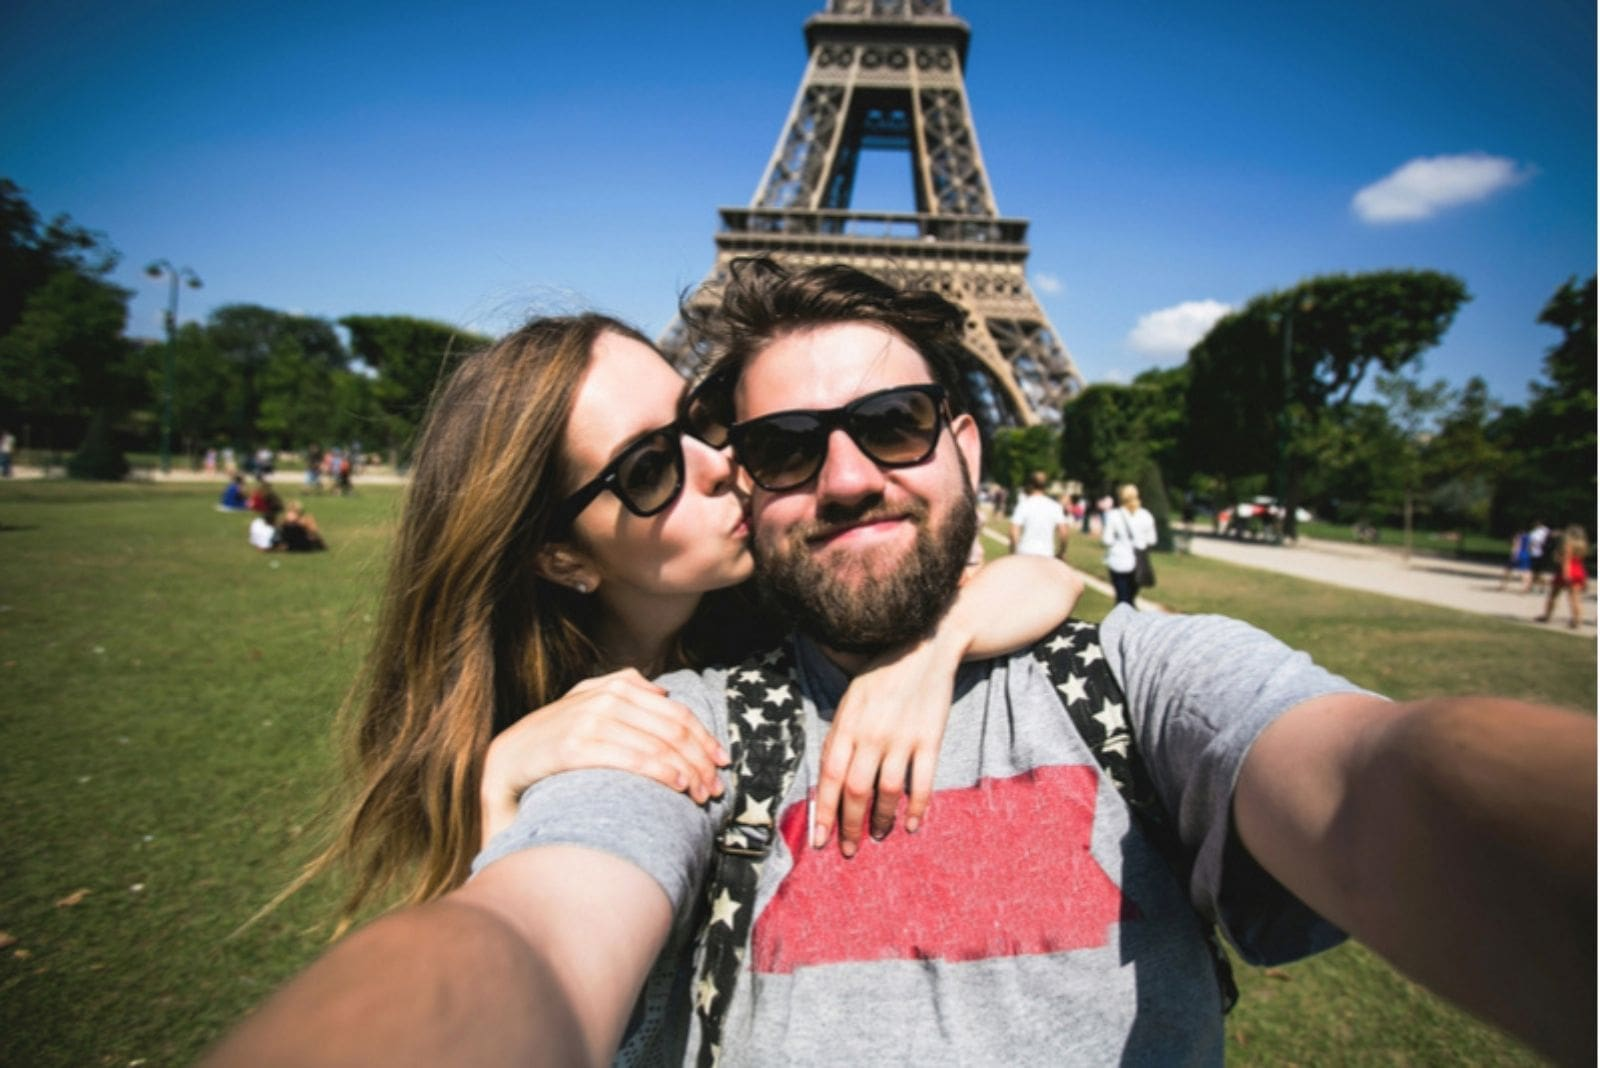 couple at the eiffel tower France posing with the woman kissing and hugging the man